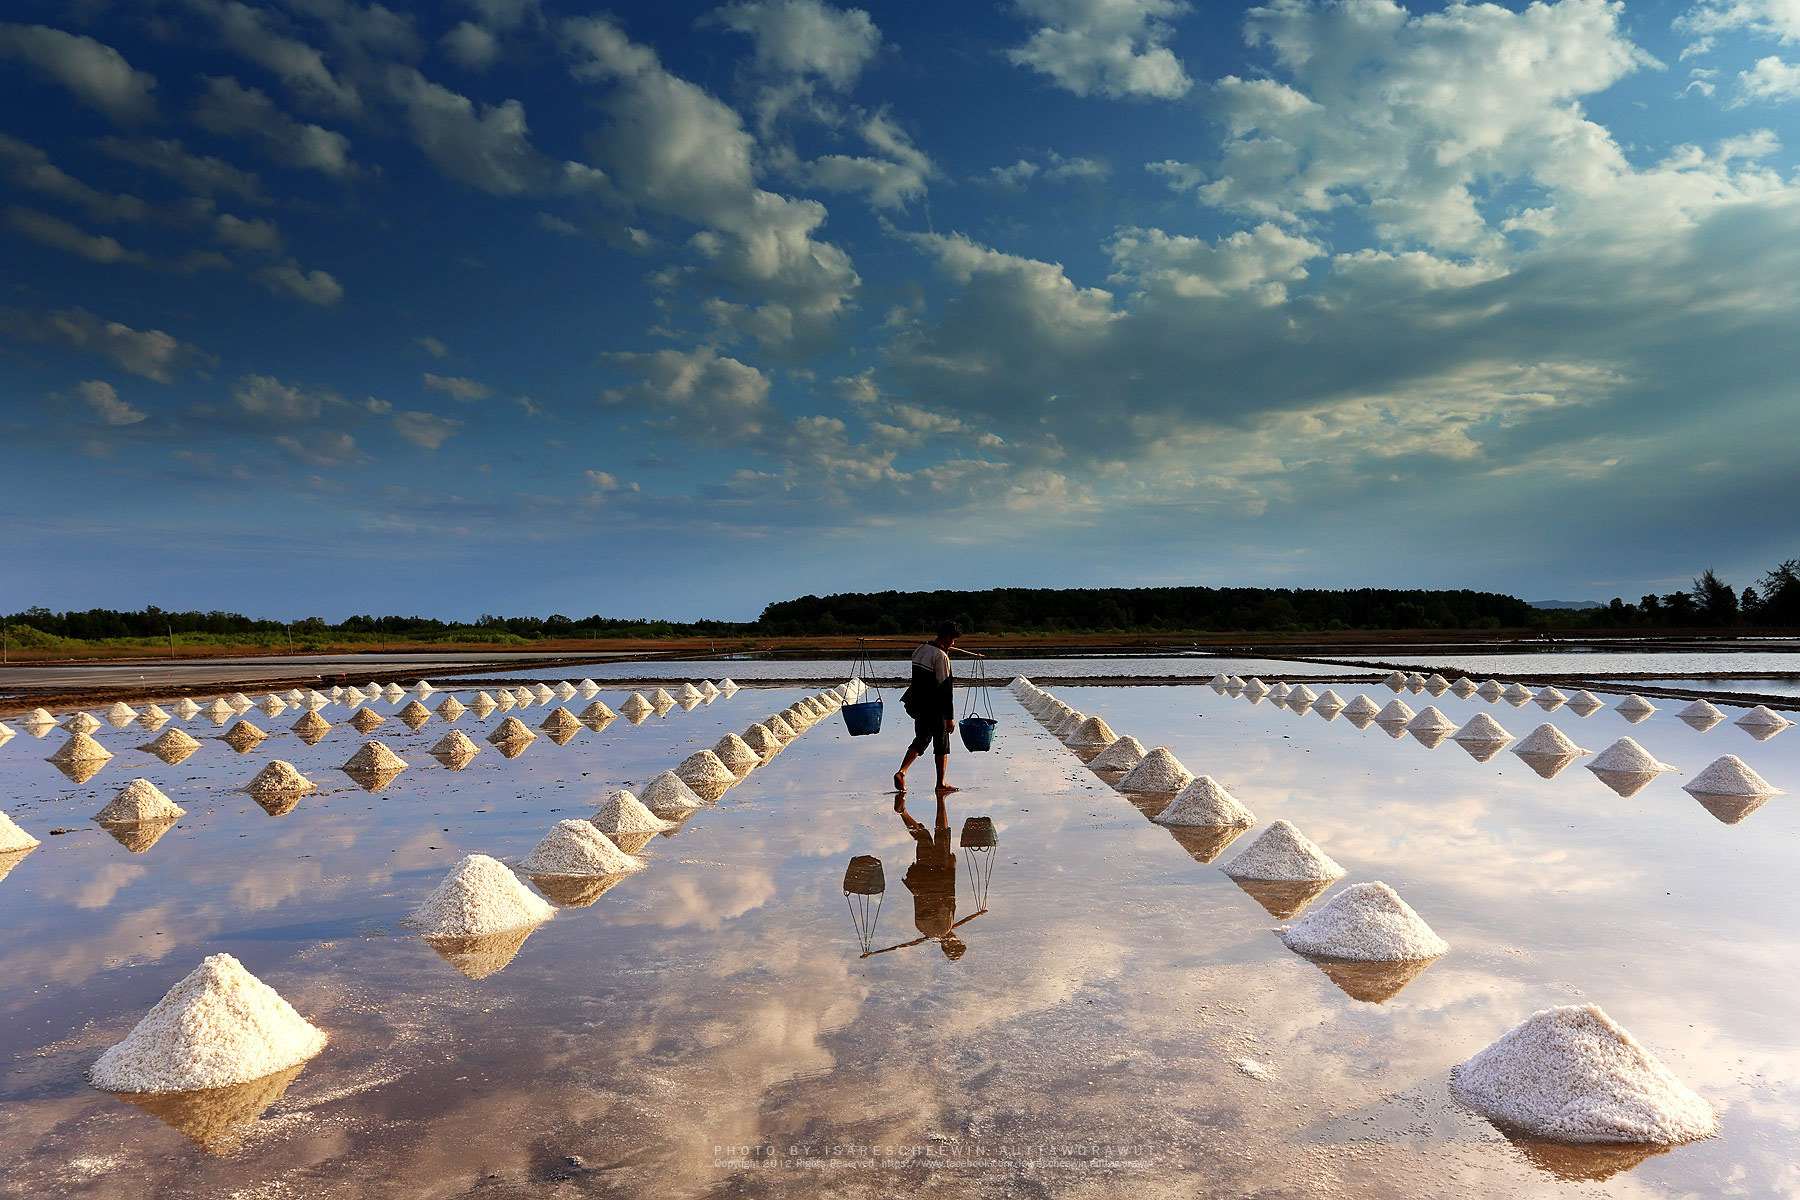 Photograph Worker in salt farm of eastern, Thailand by isarescheewin auttaworawut on 500px